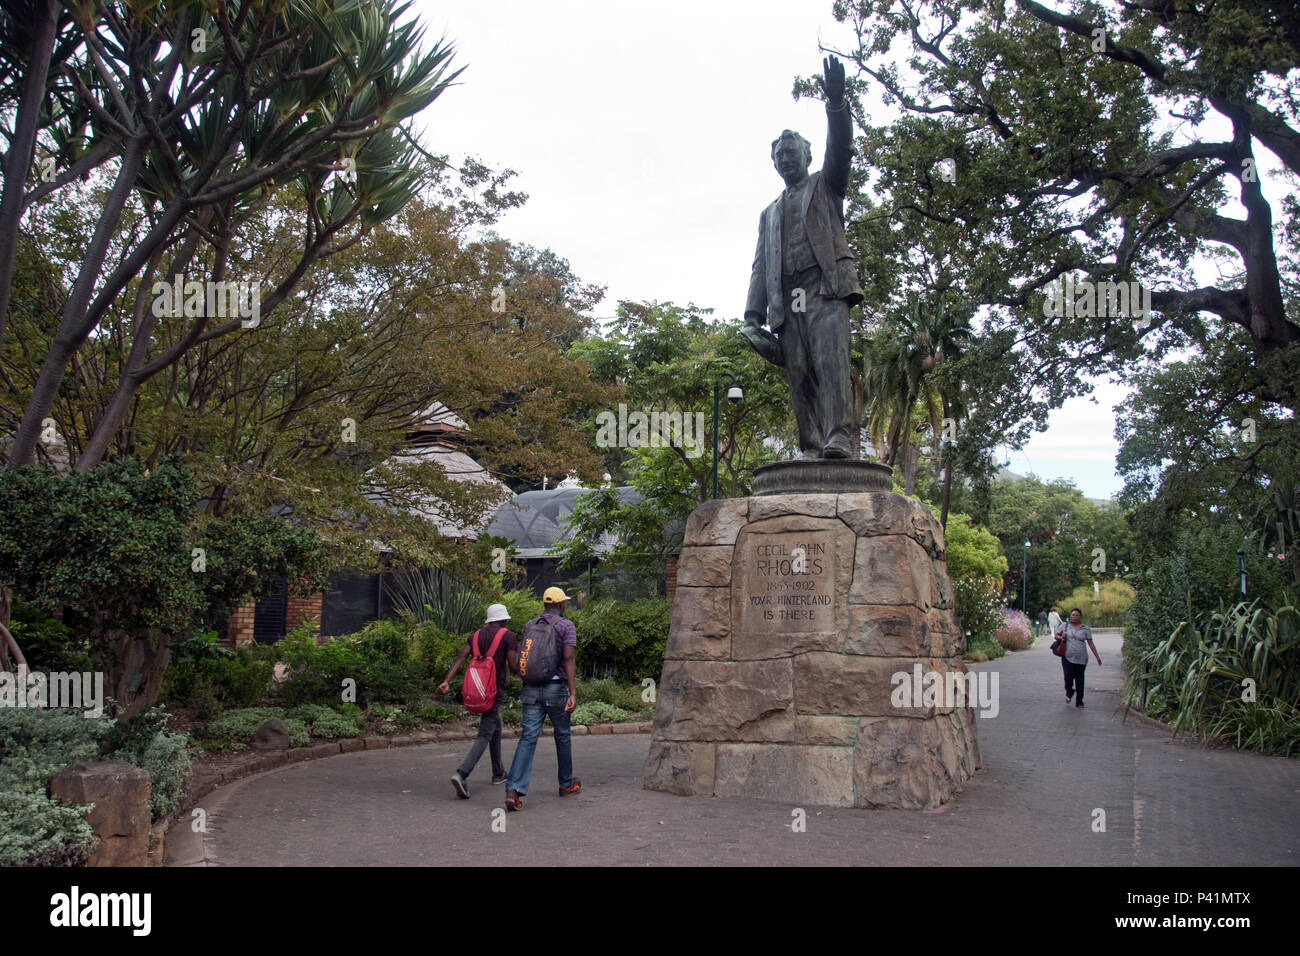 Statue of Cecil Rhodes (c.1908) stands at Company's Garden (Dutch East India Company) in Cape Town, South Africa. - Stock Image